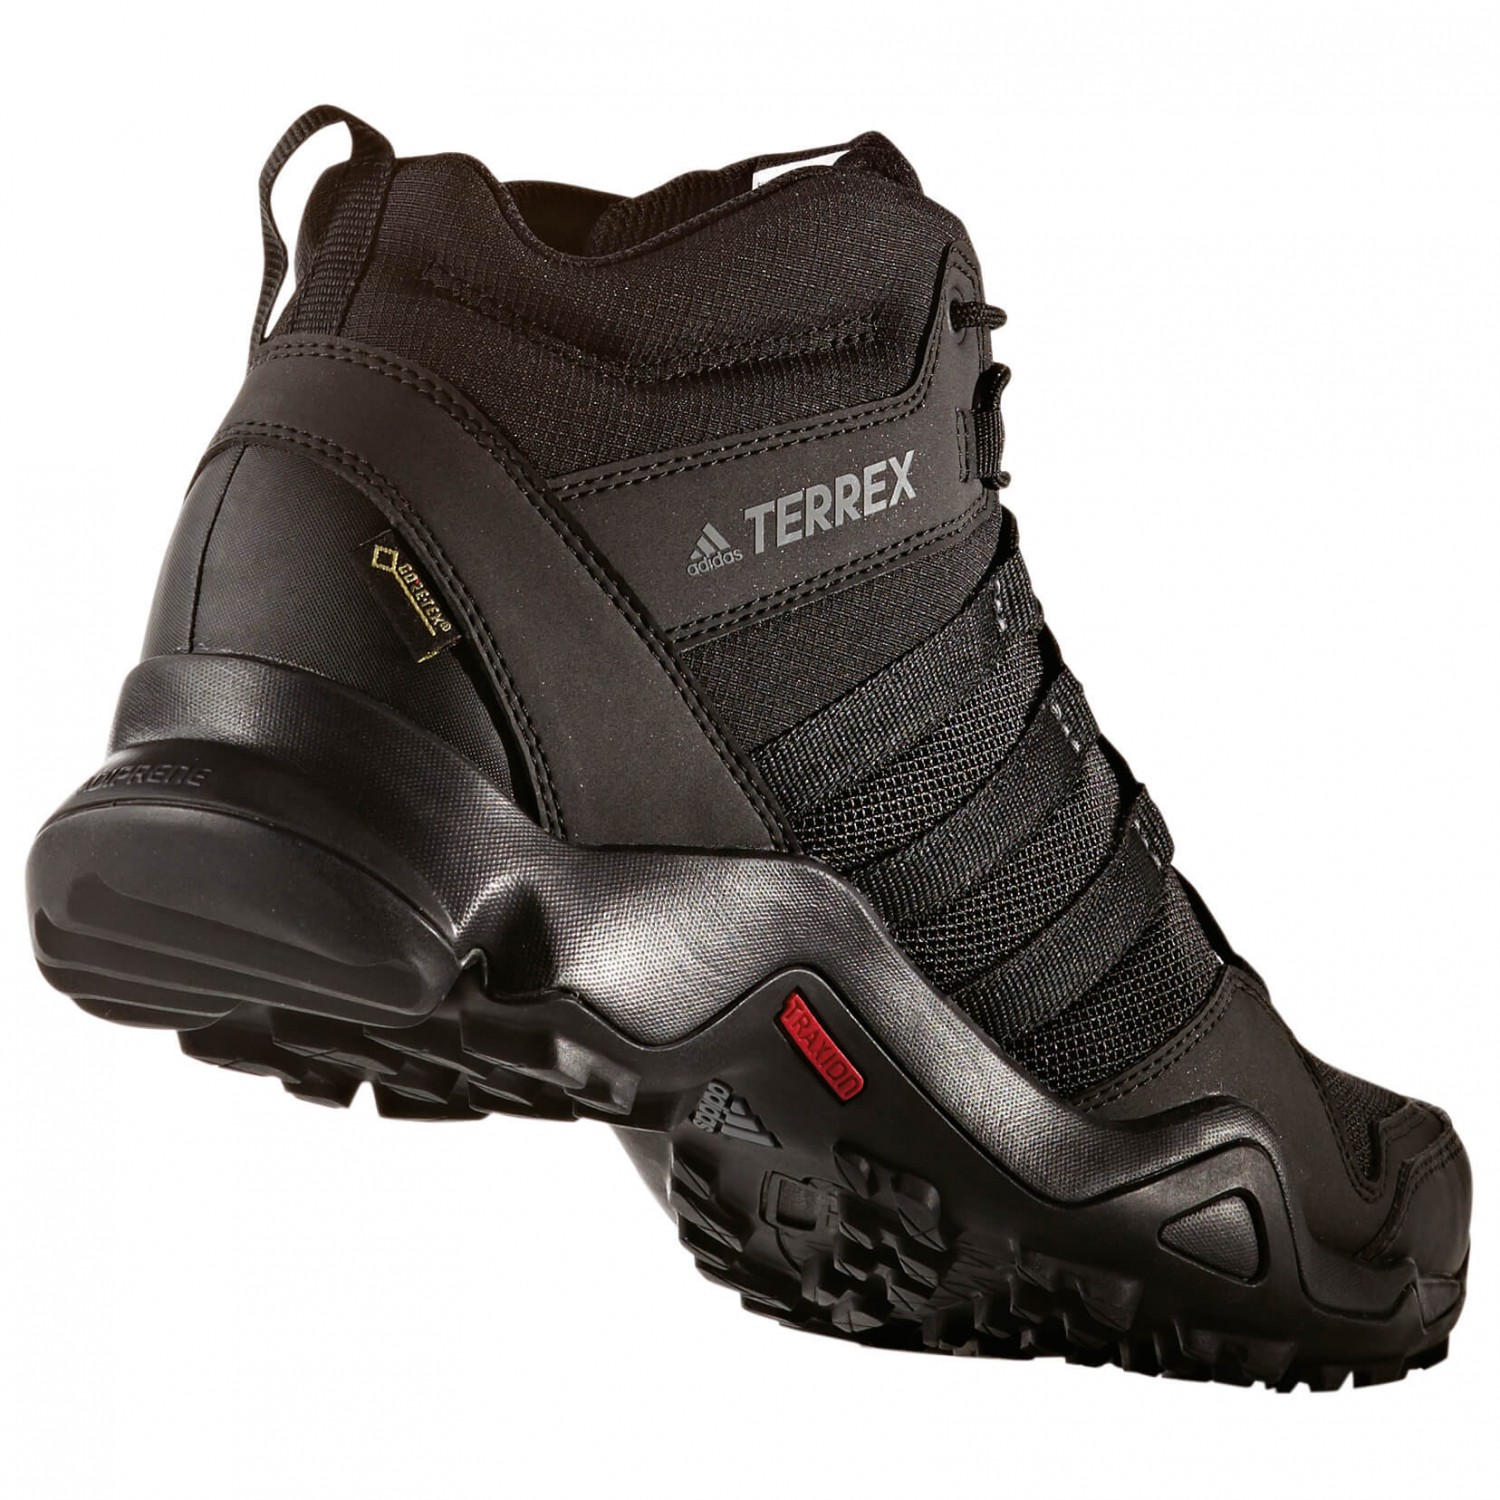 adidas terrex ax2r mid gtx wanderschuhe herren. Black Bedroom Furniture Sets. Home Design Ideas